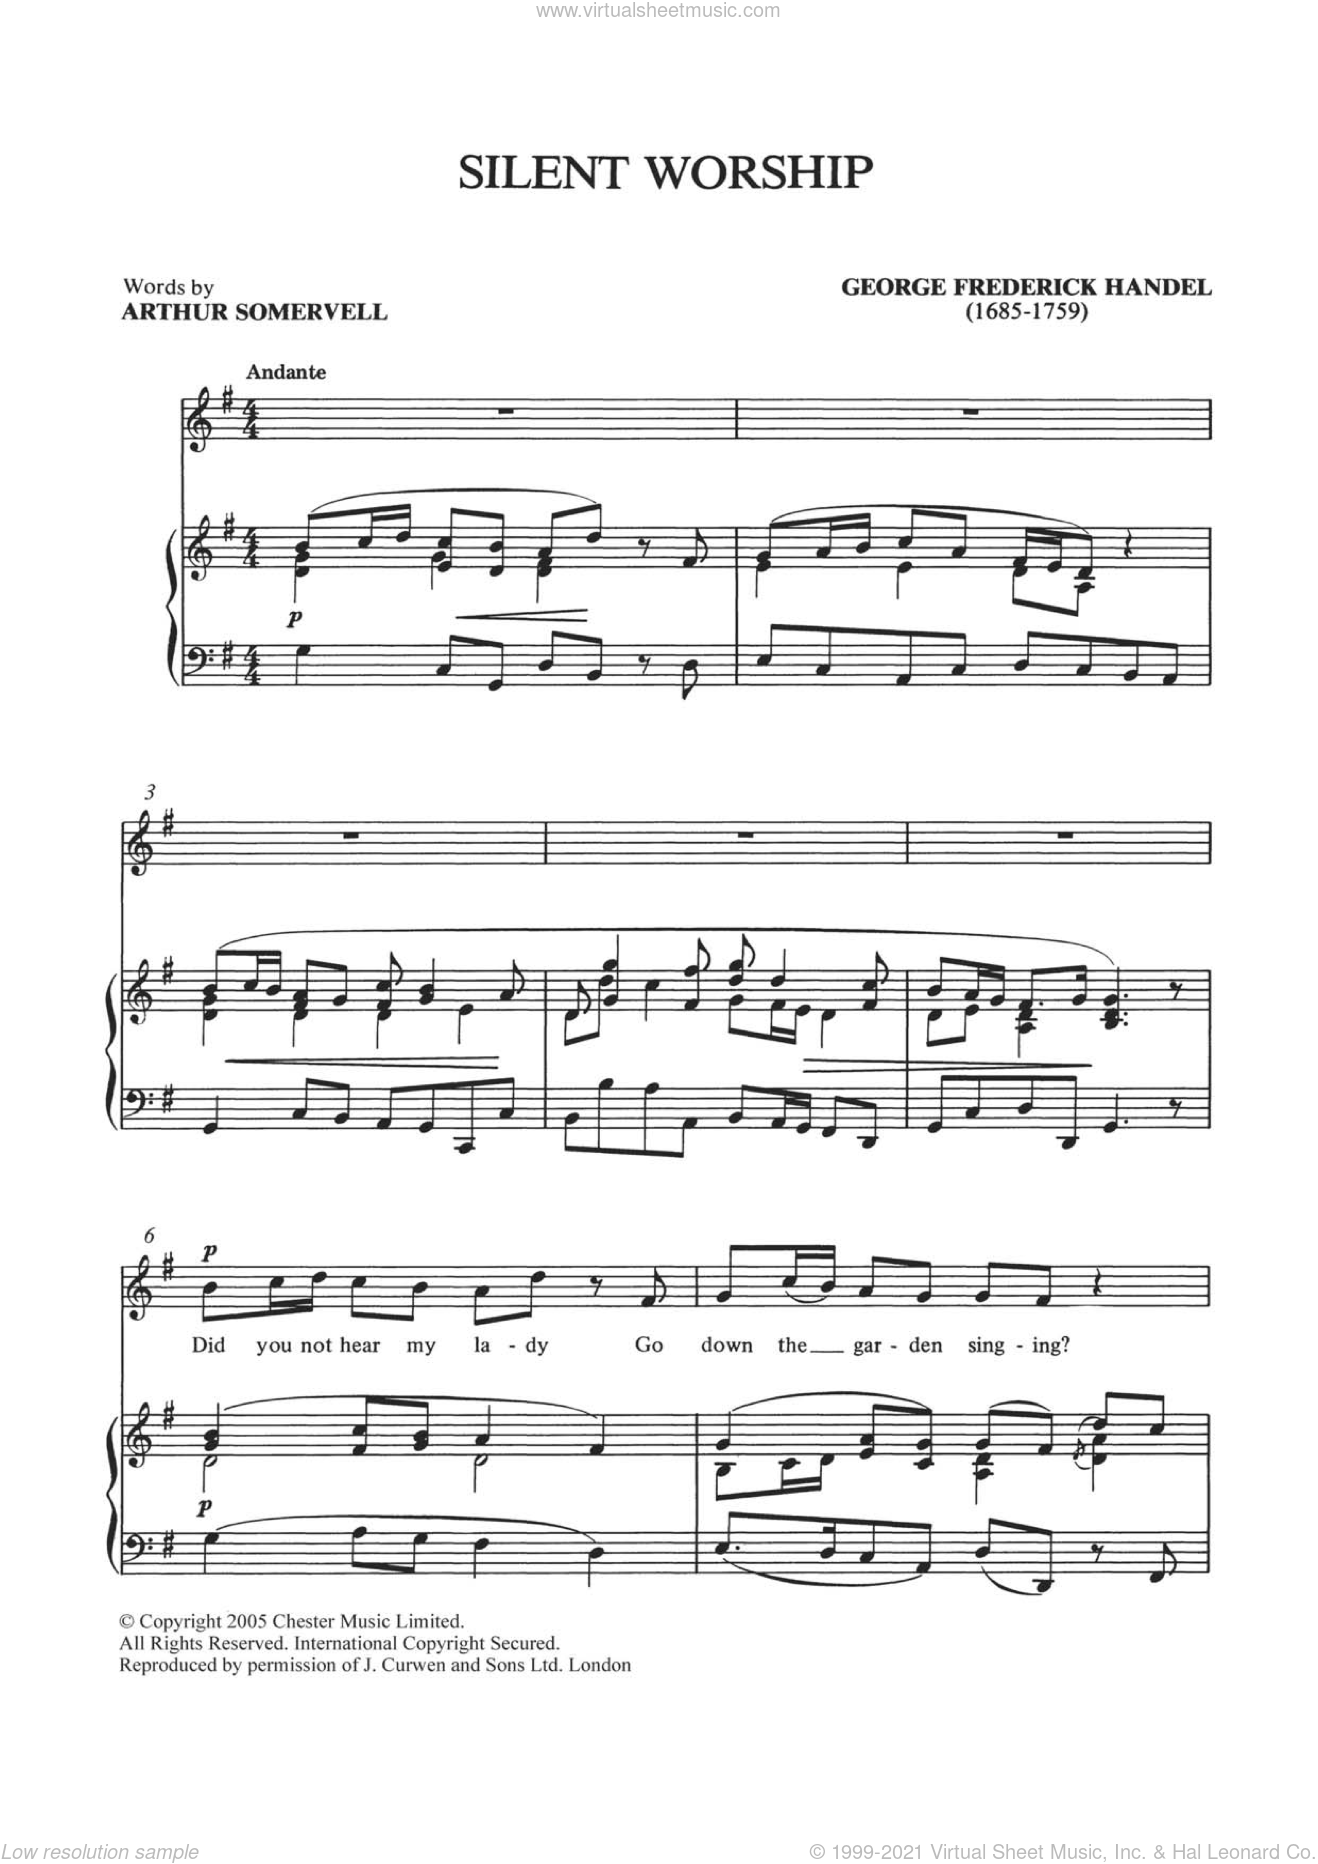 Silent Worship (from Tolmeo HWV25) sheet music for voice and piano by George Frideric Handel, classical score, intermediate skill level